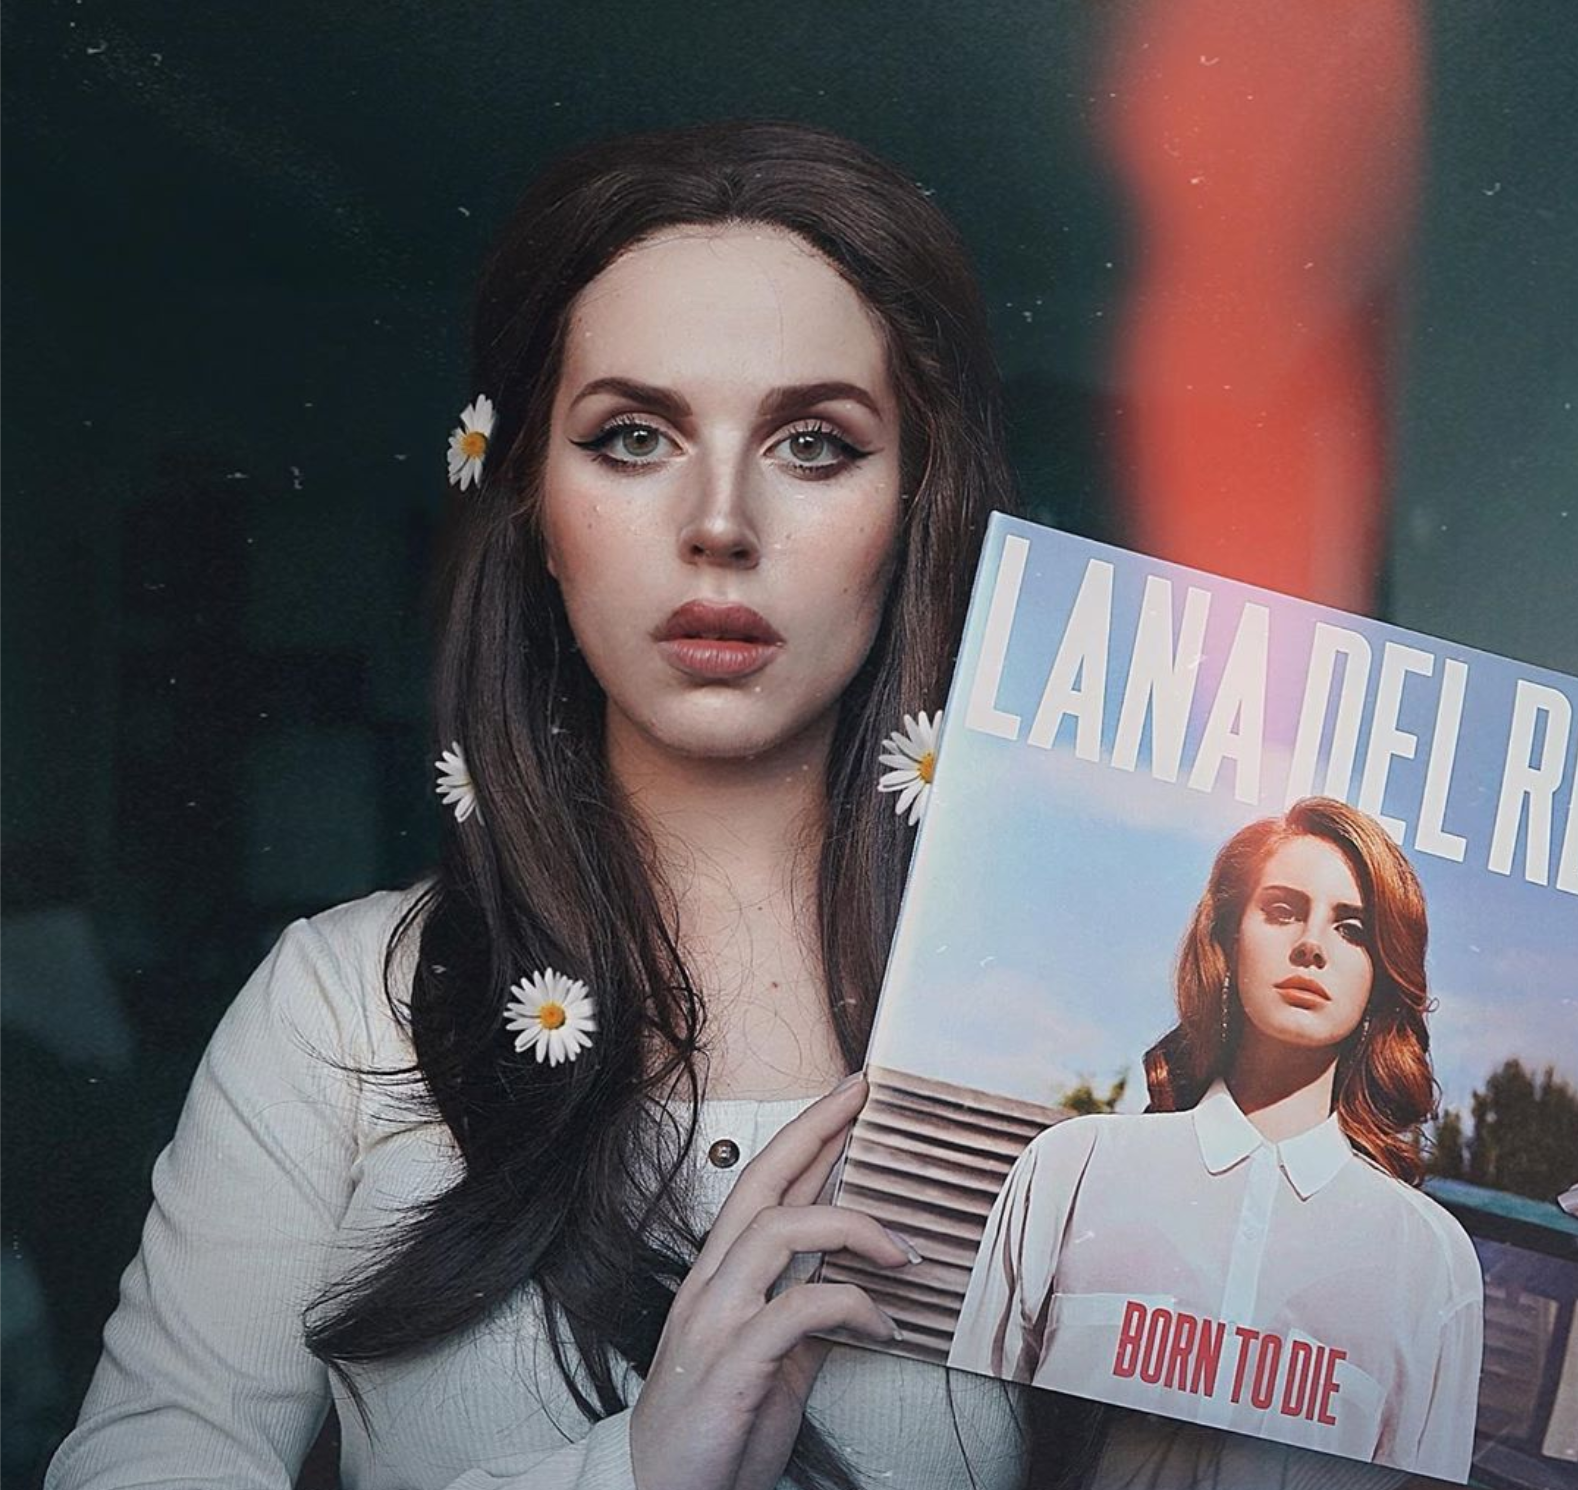 A girl with flowers in her hair and heavy makeup holds a Lana Del Rey album for her costume.